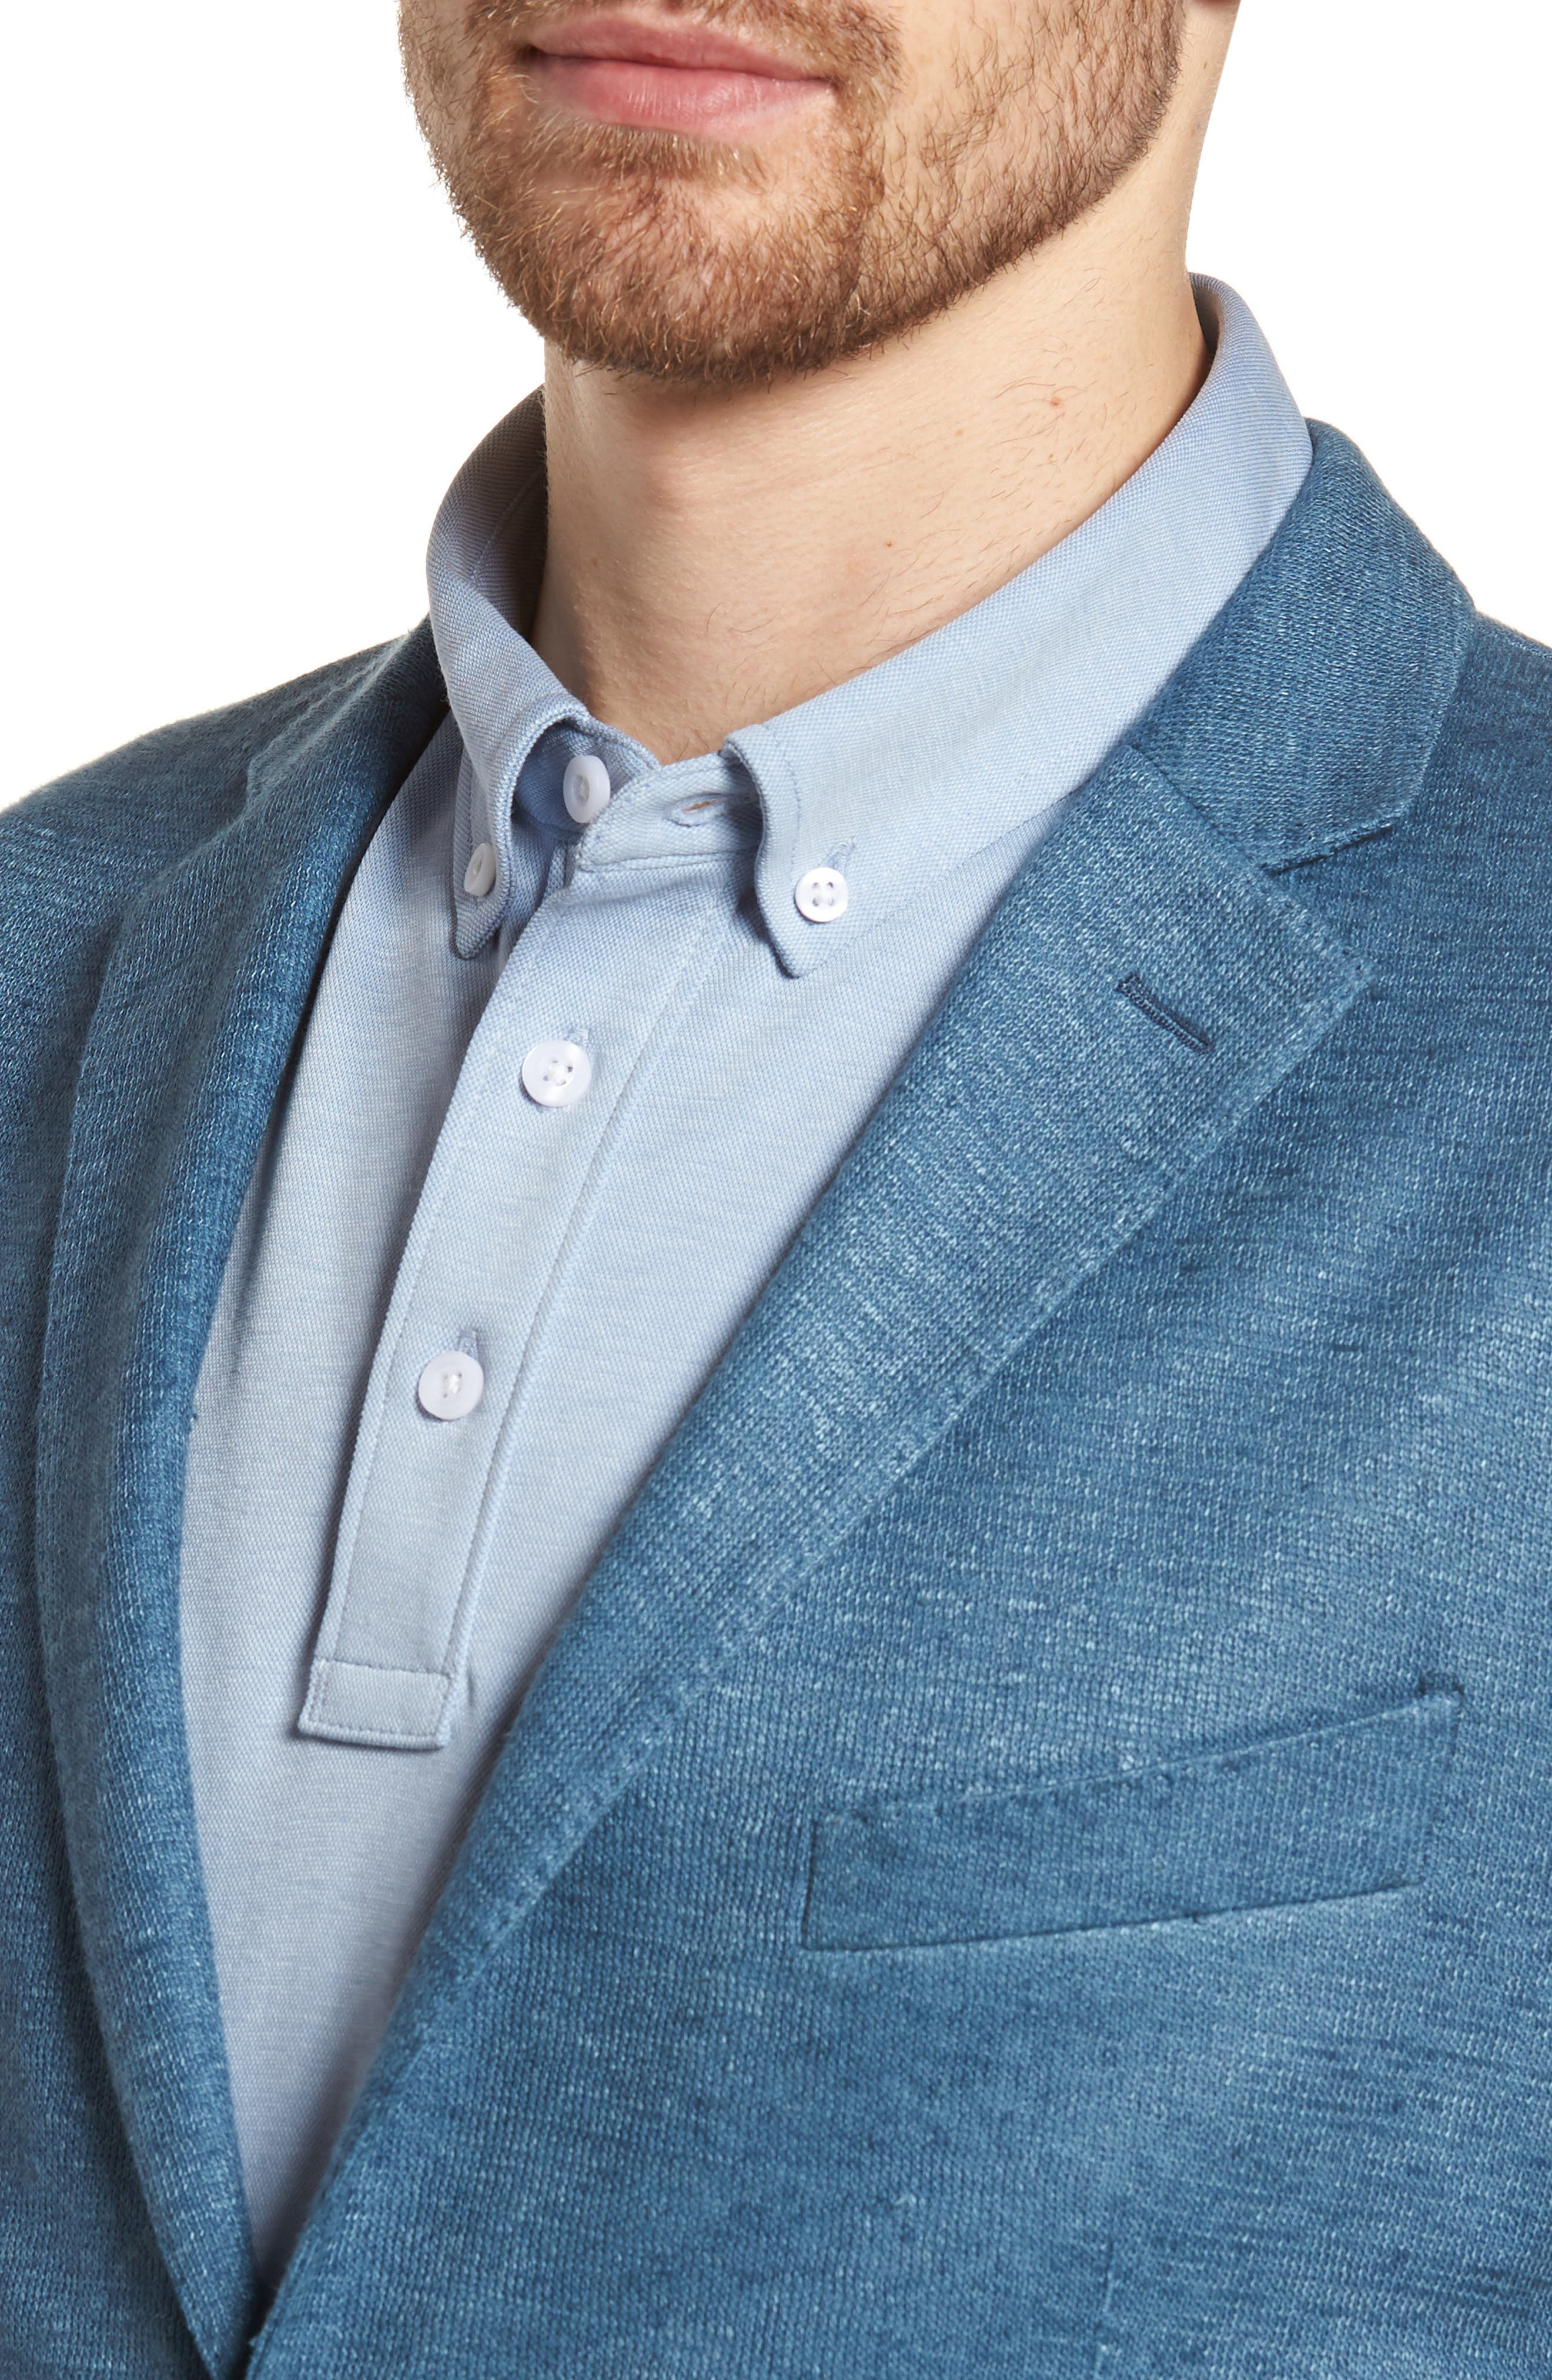 Trim Fit Heathered Jersey Blazer,                             Alternate thumbnail 4, color,                             420